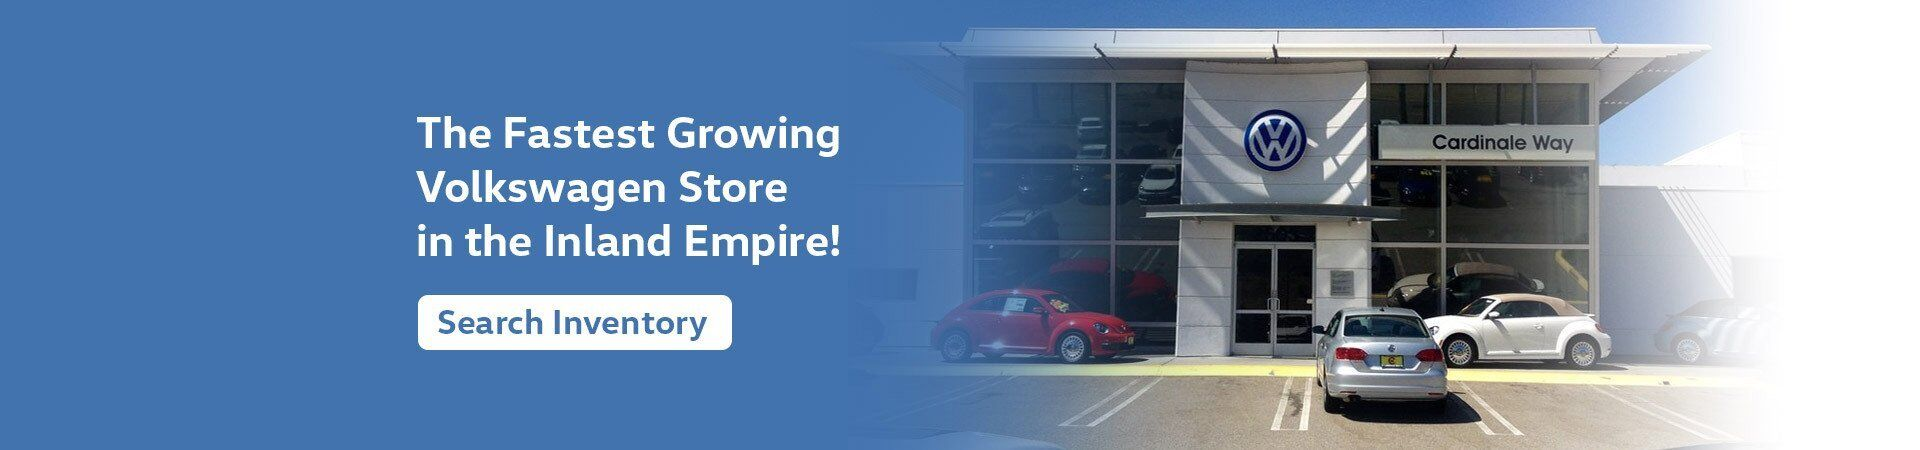 Fastest Growing VW Store